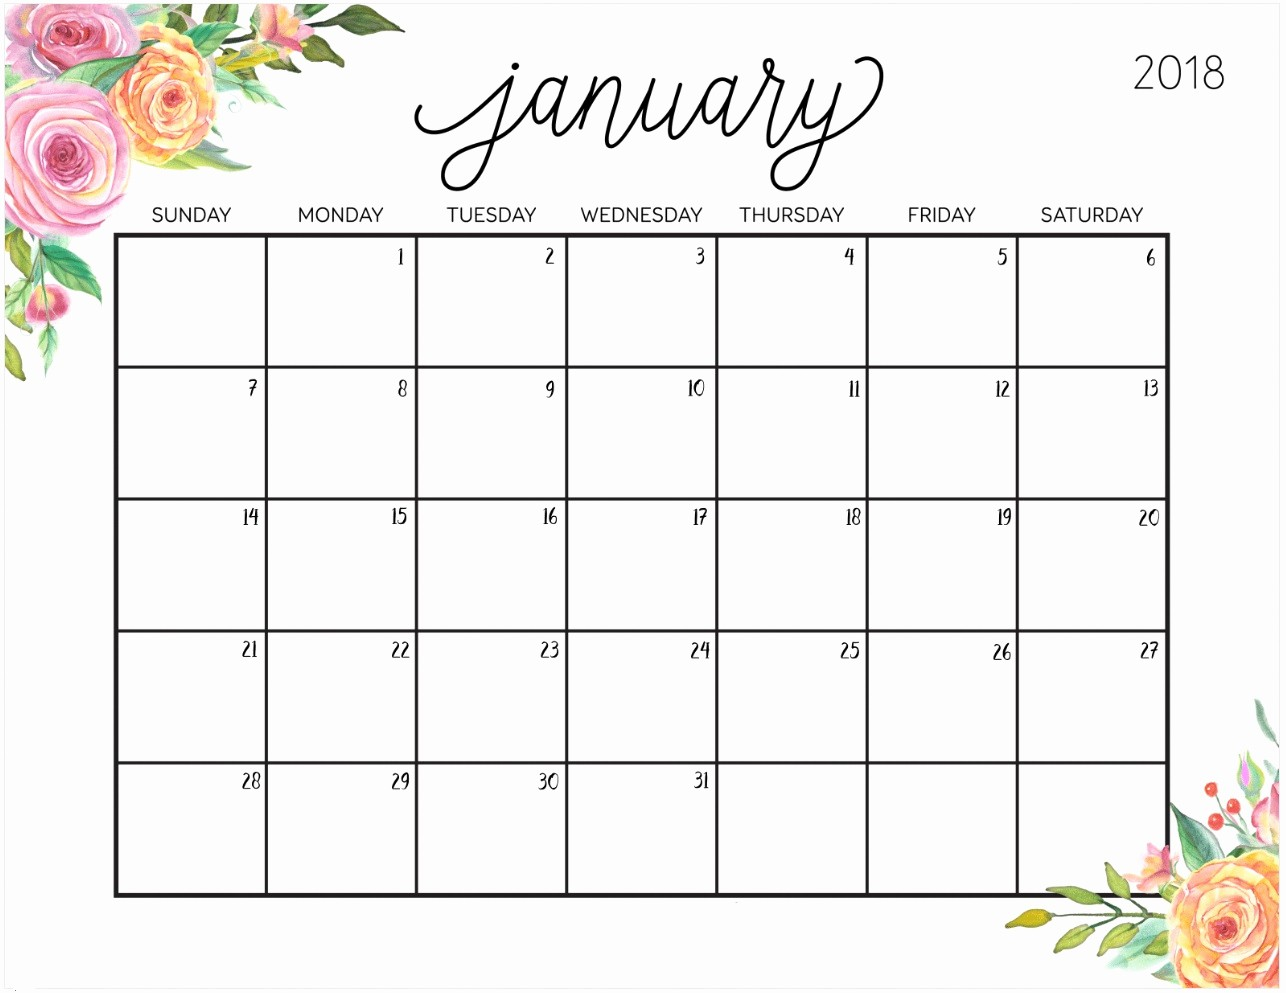 Free 2018 Monthly Calendar Template Beautiful Free Printable 2018 Calendar with Weekly Planner